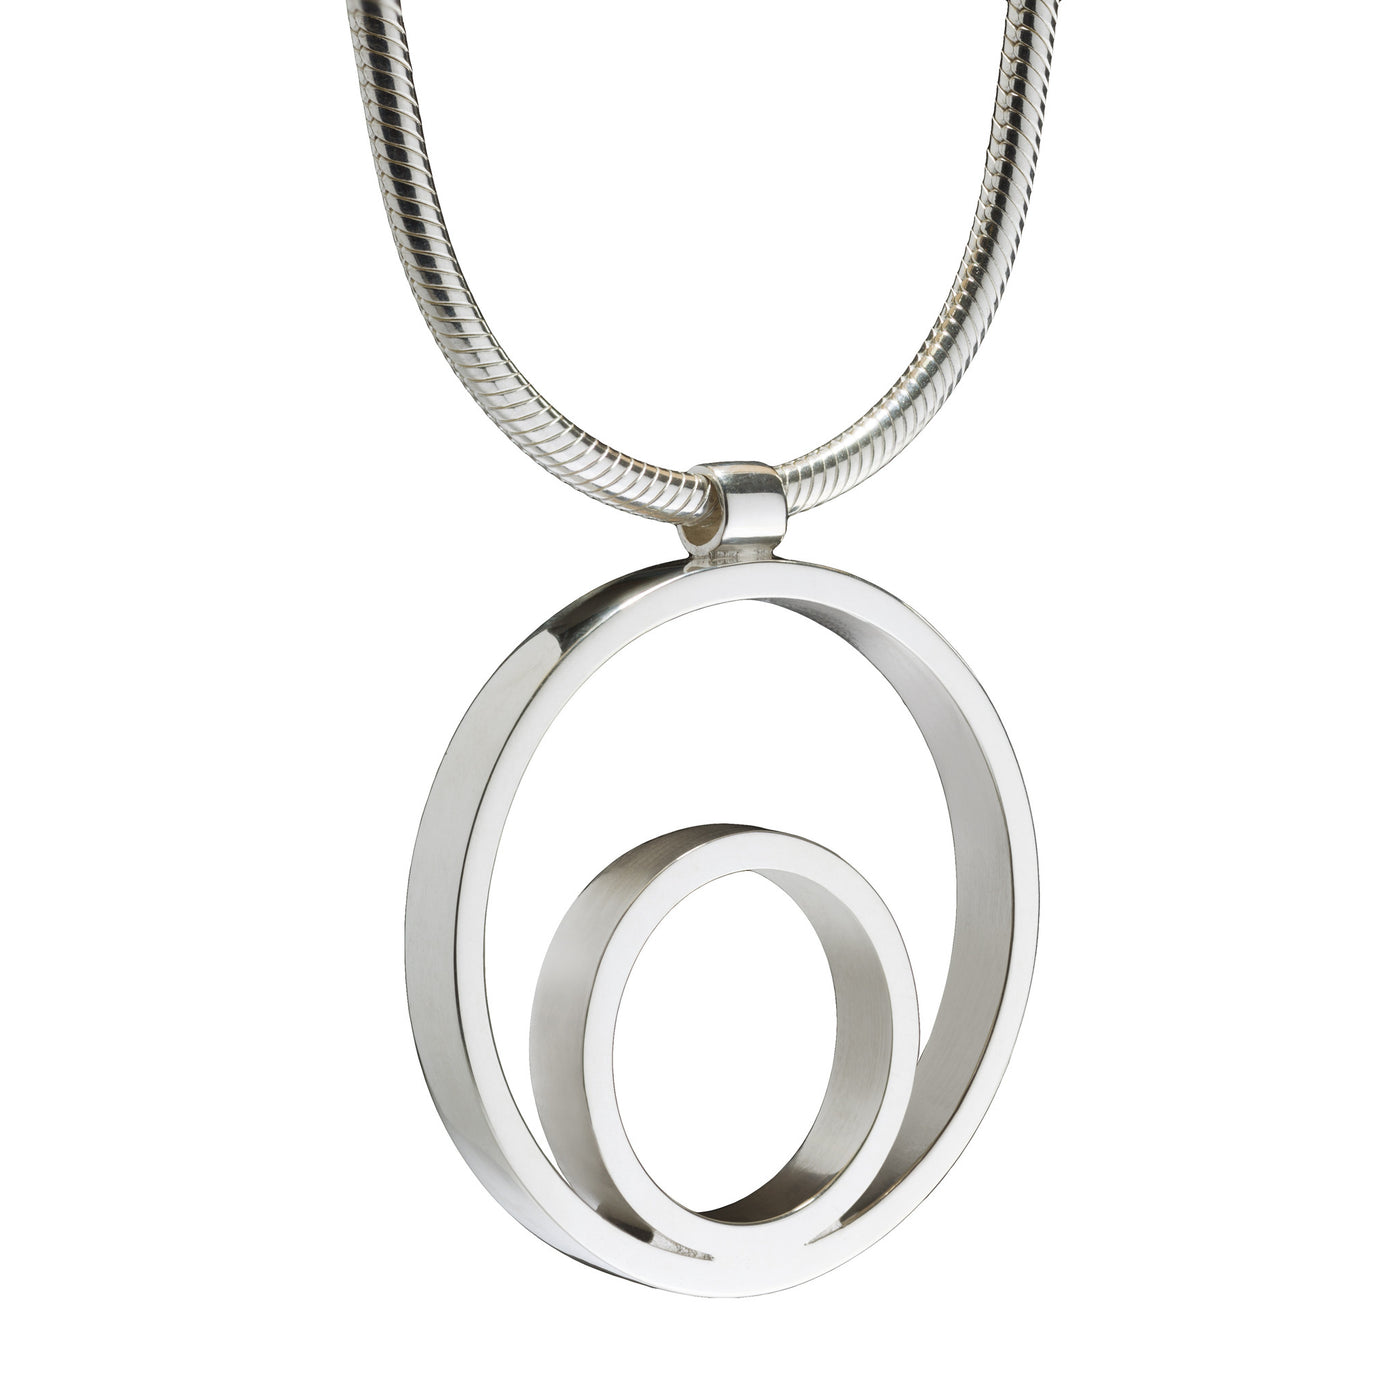 Circles Large Silver Pendant. Unique designer jewellery handcrafted in Ireland.